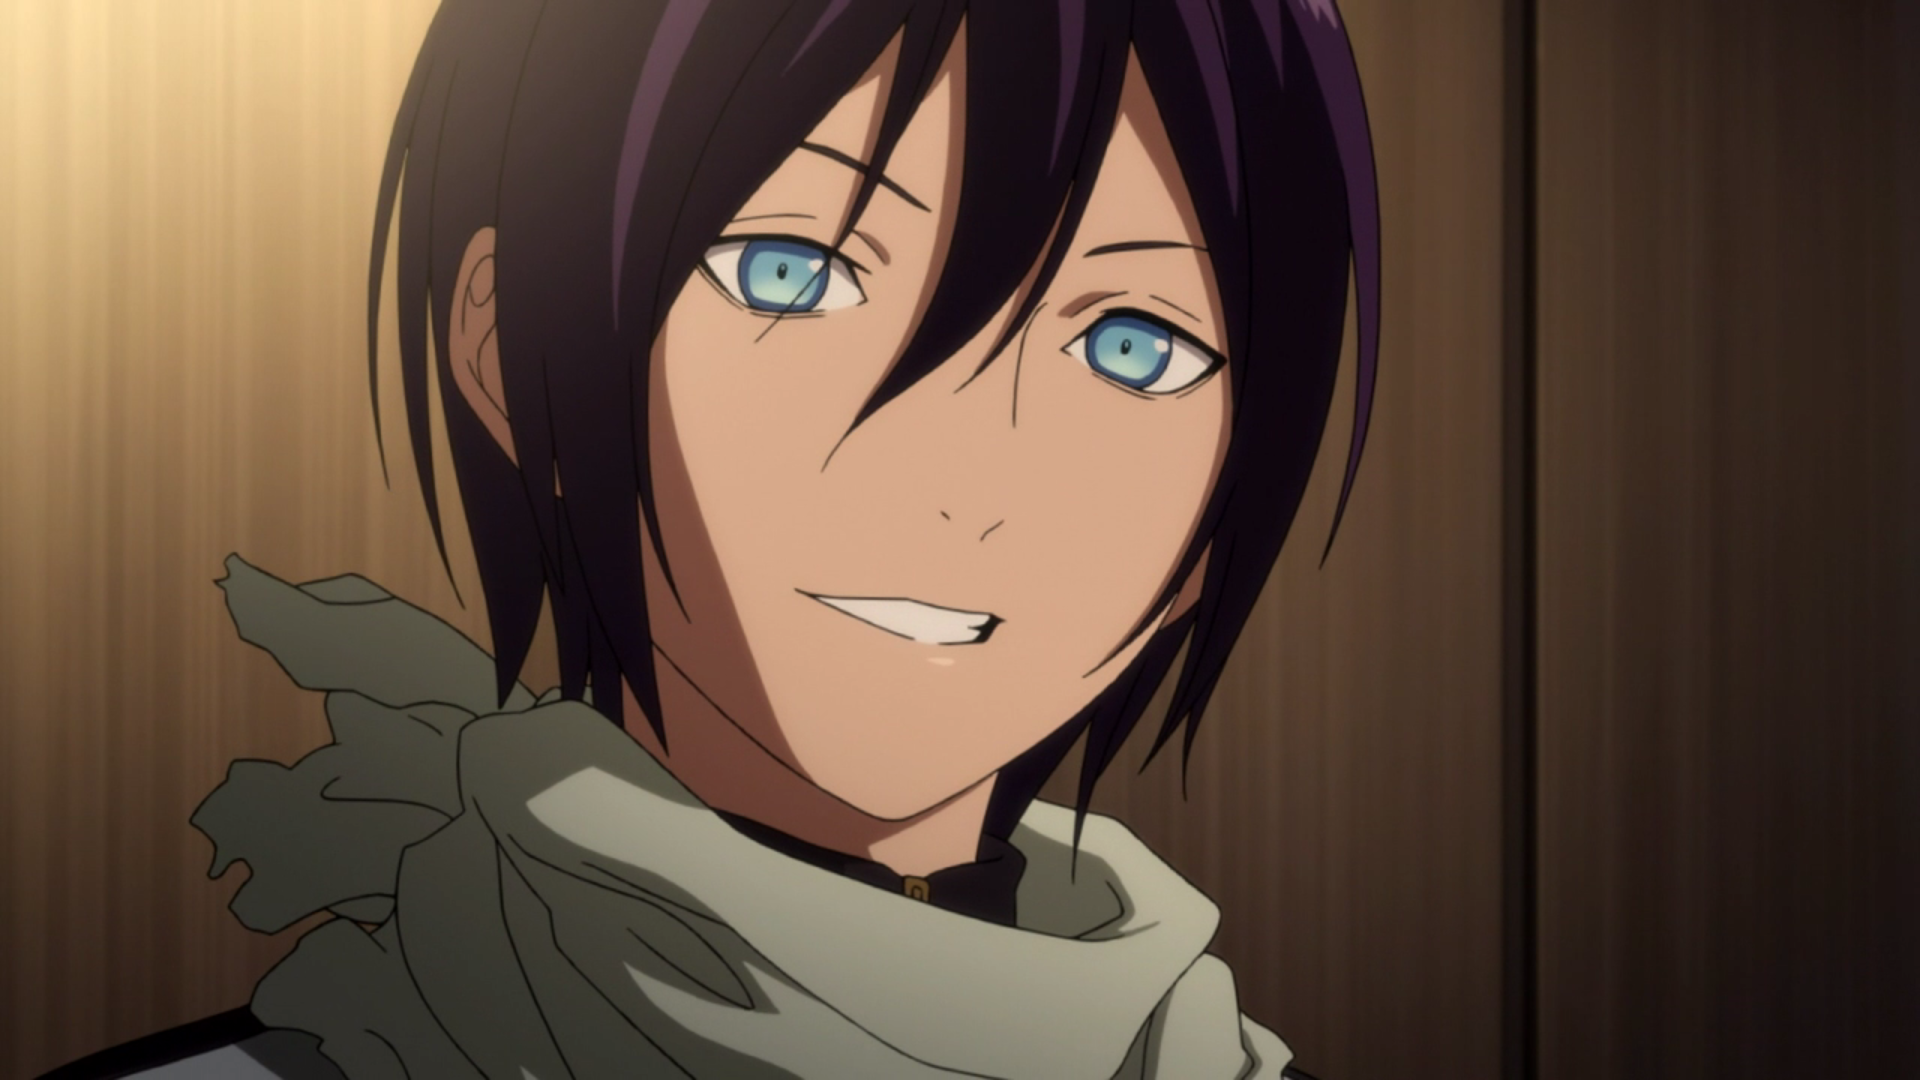 how tall is yato noragami